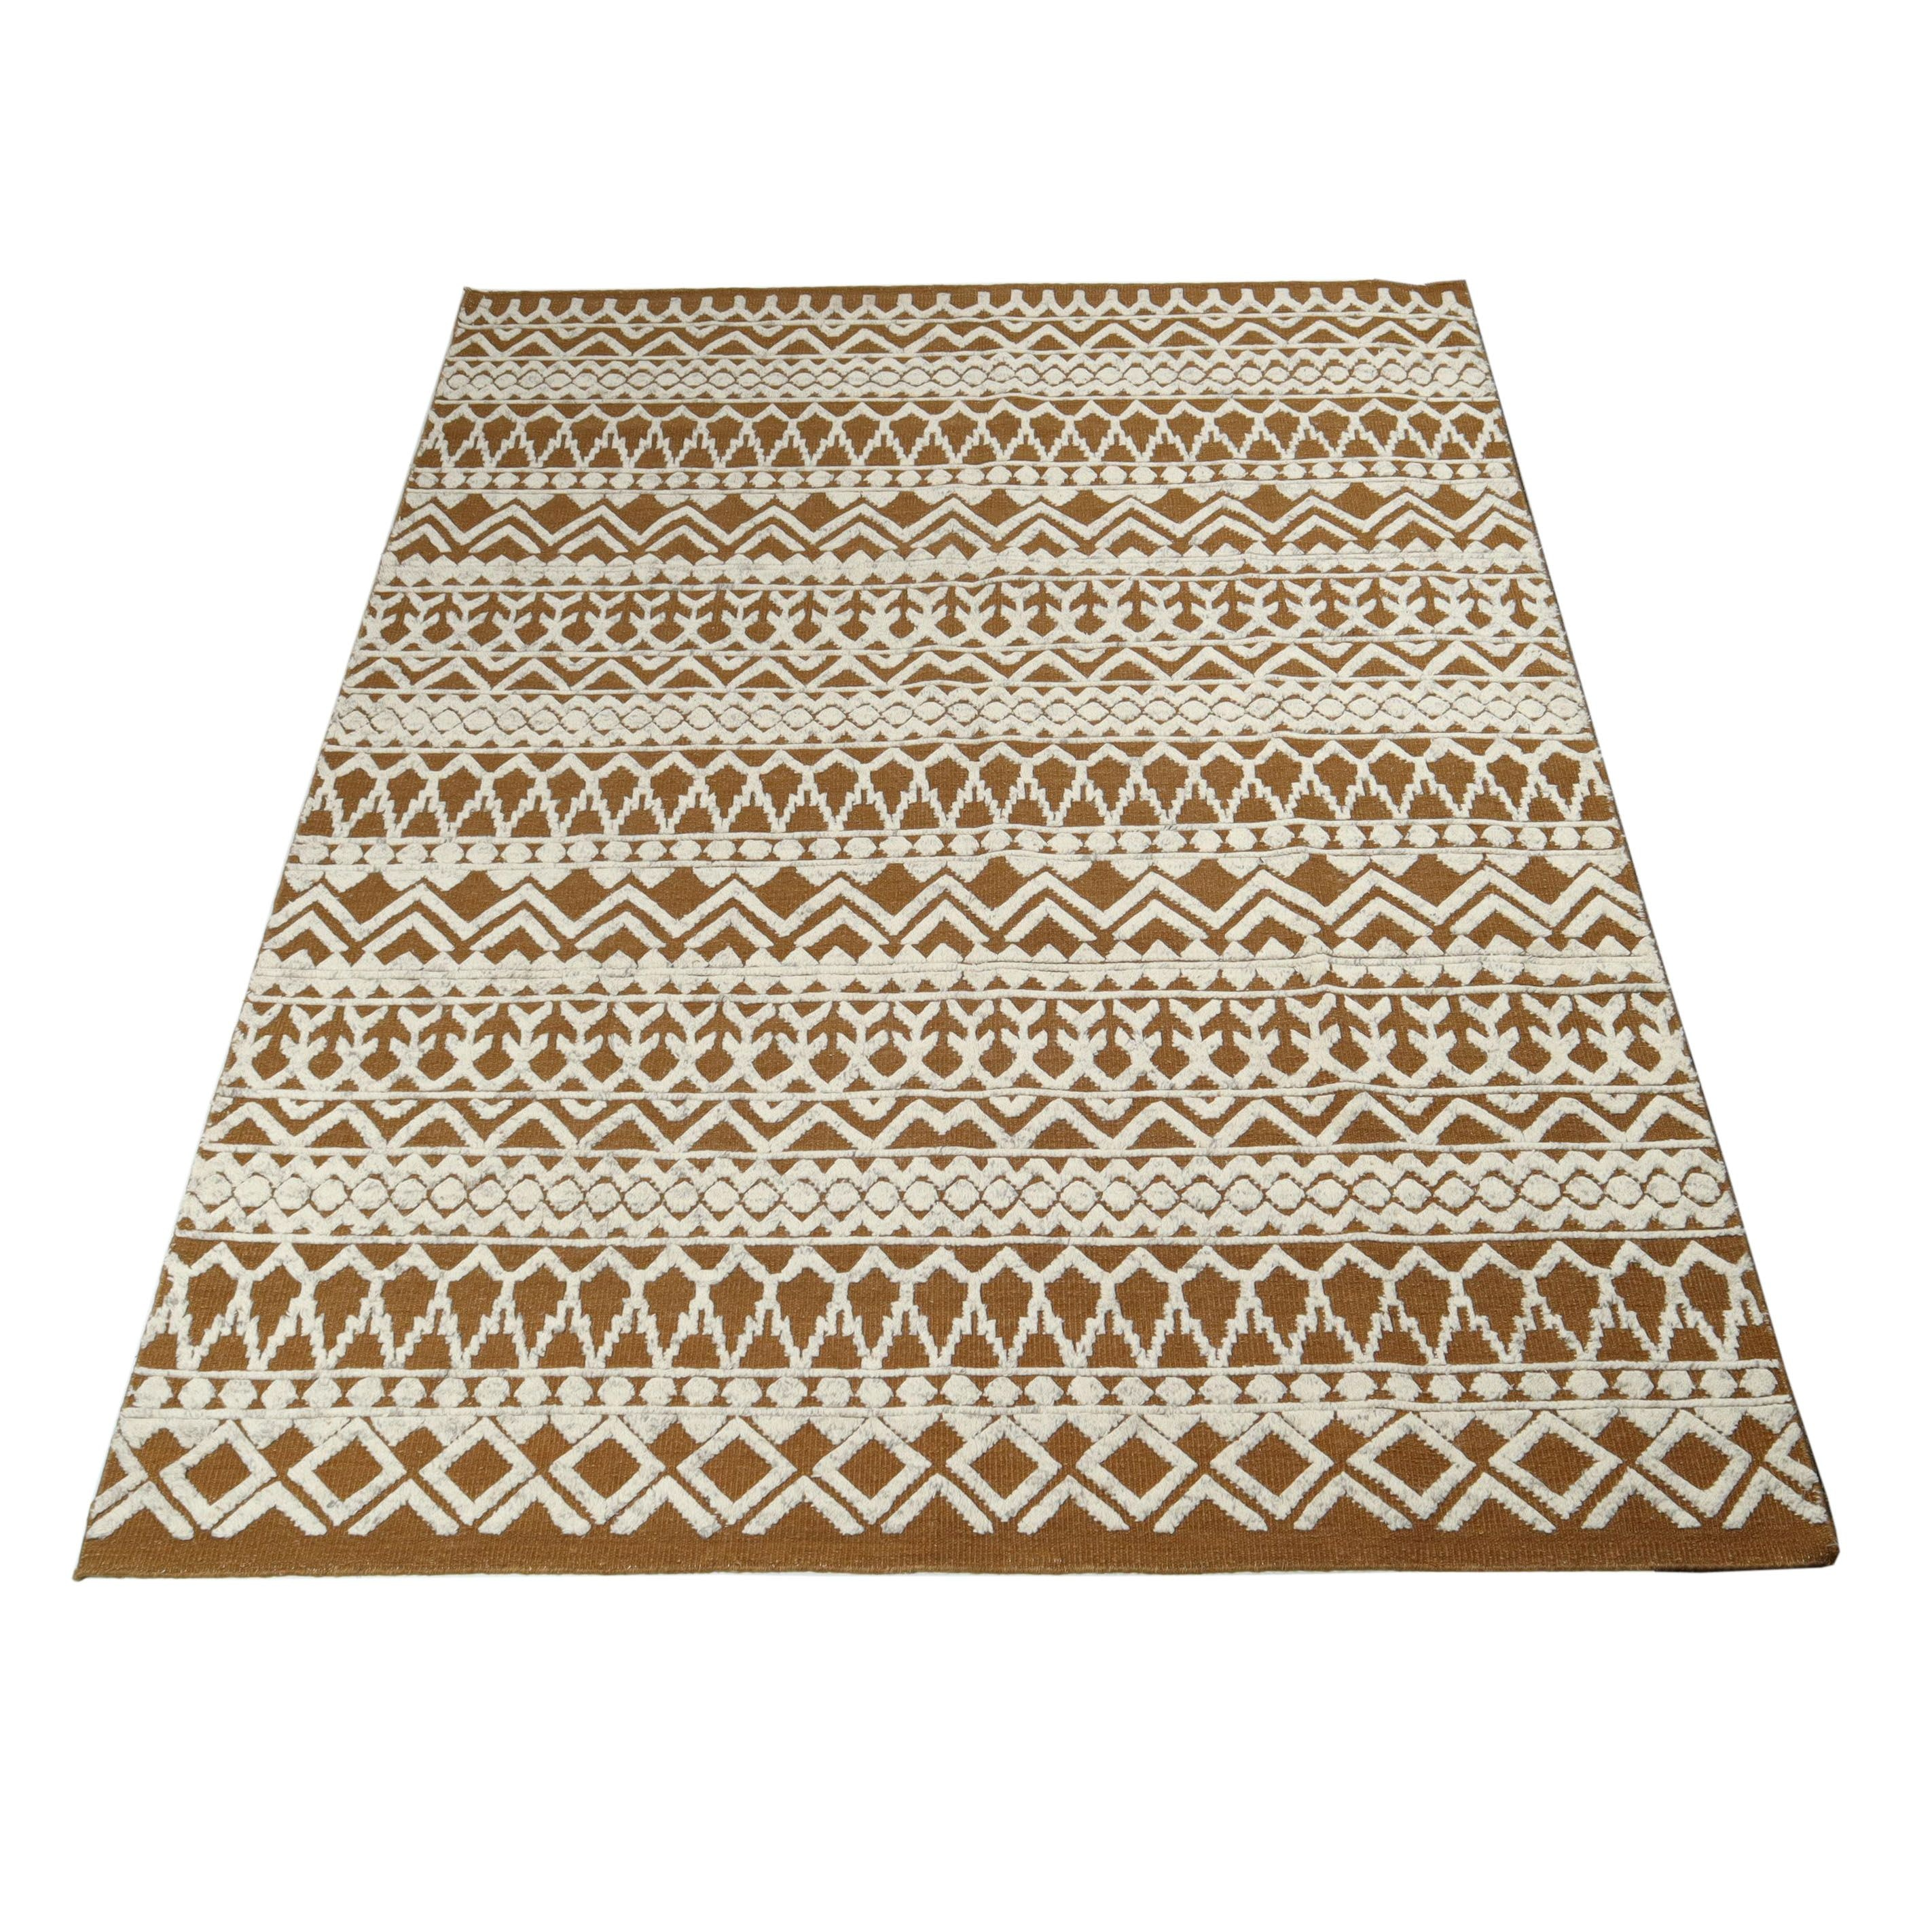 8.2' x 10.7' Handwoven Indo-Moroccan Mid Century Modern Wool Rug